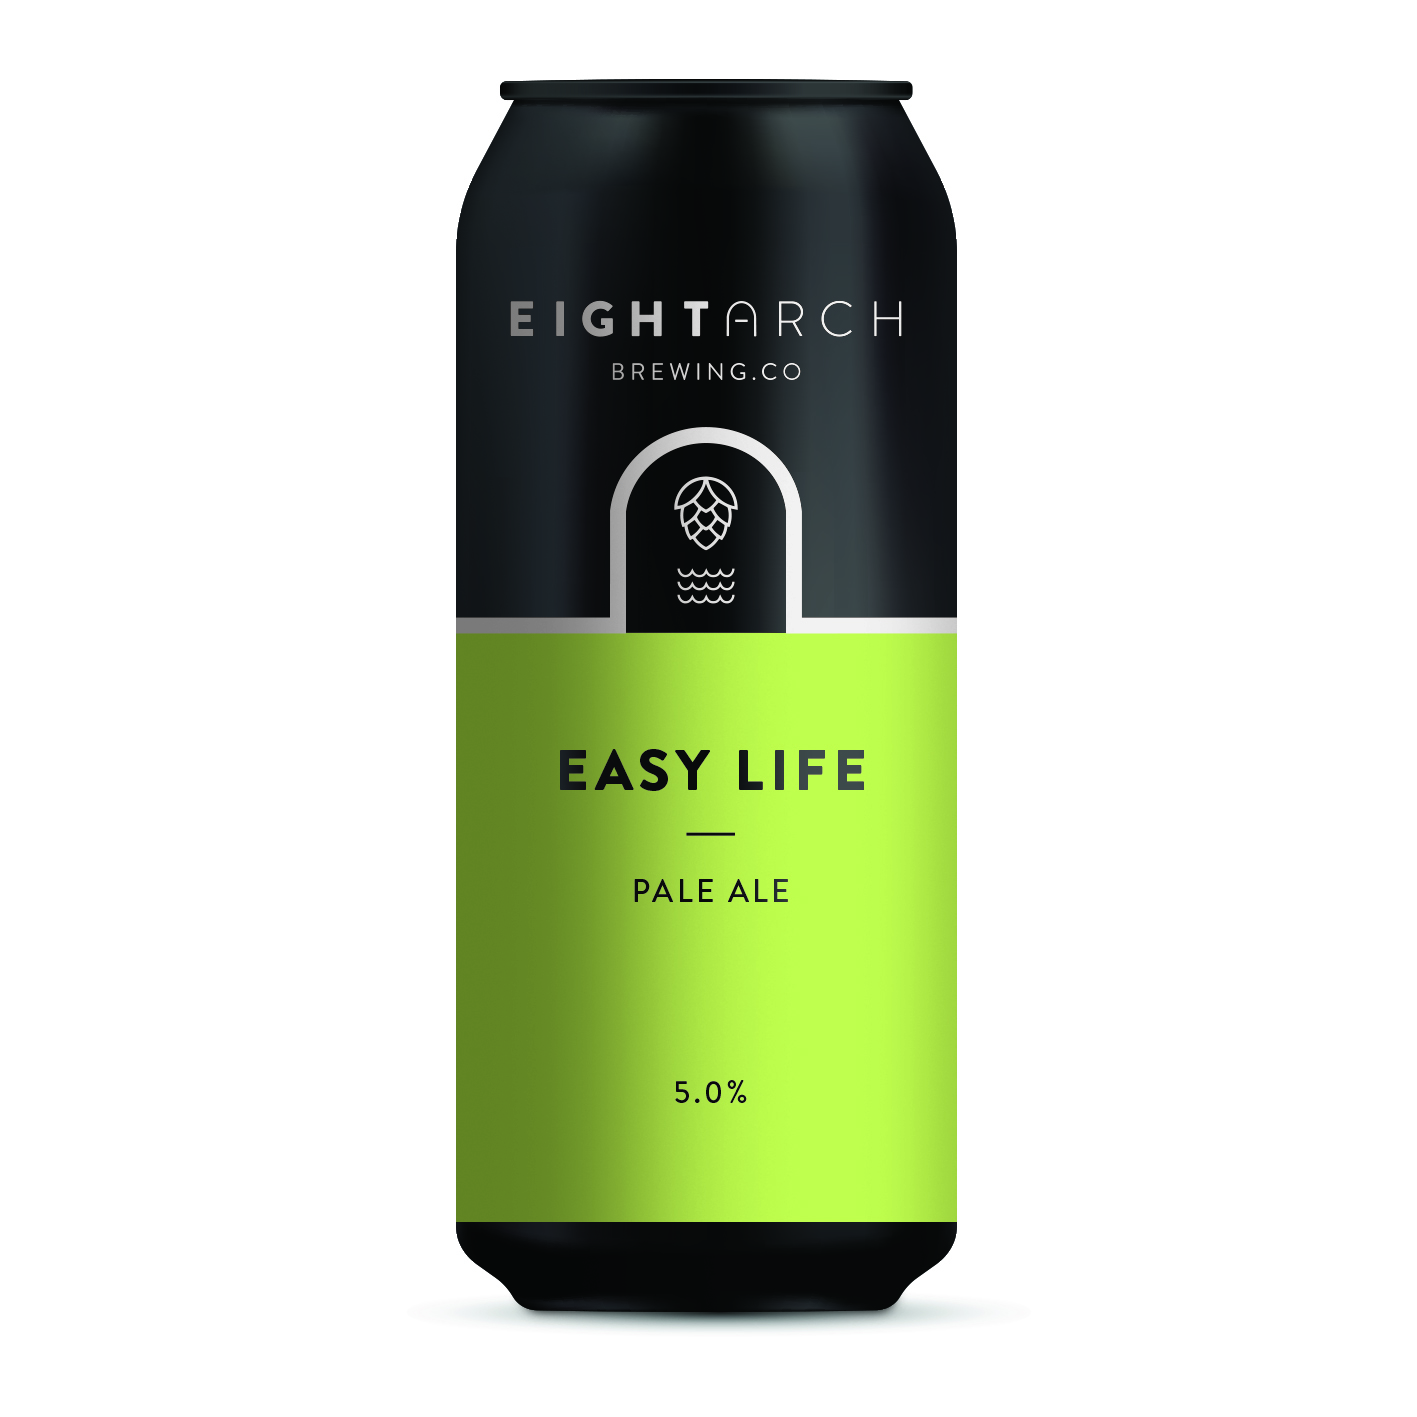 https://www.8archbrewing.co.uk/wp-content/uploads/2020/09/Easy-Life_440ml-can_white.jpg